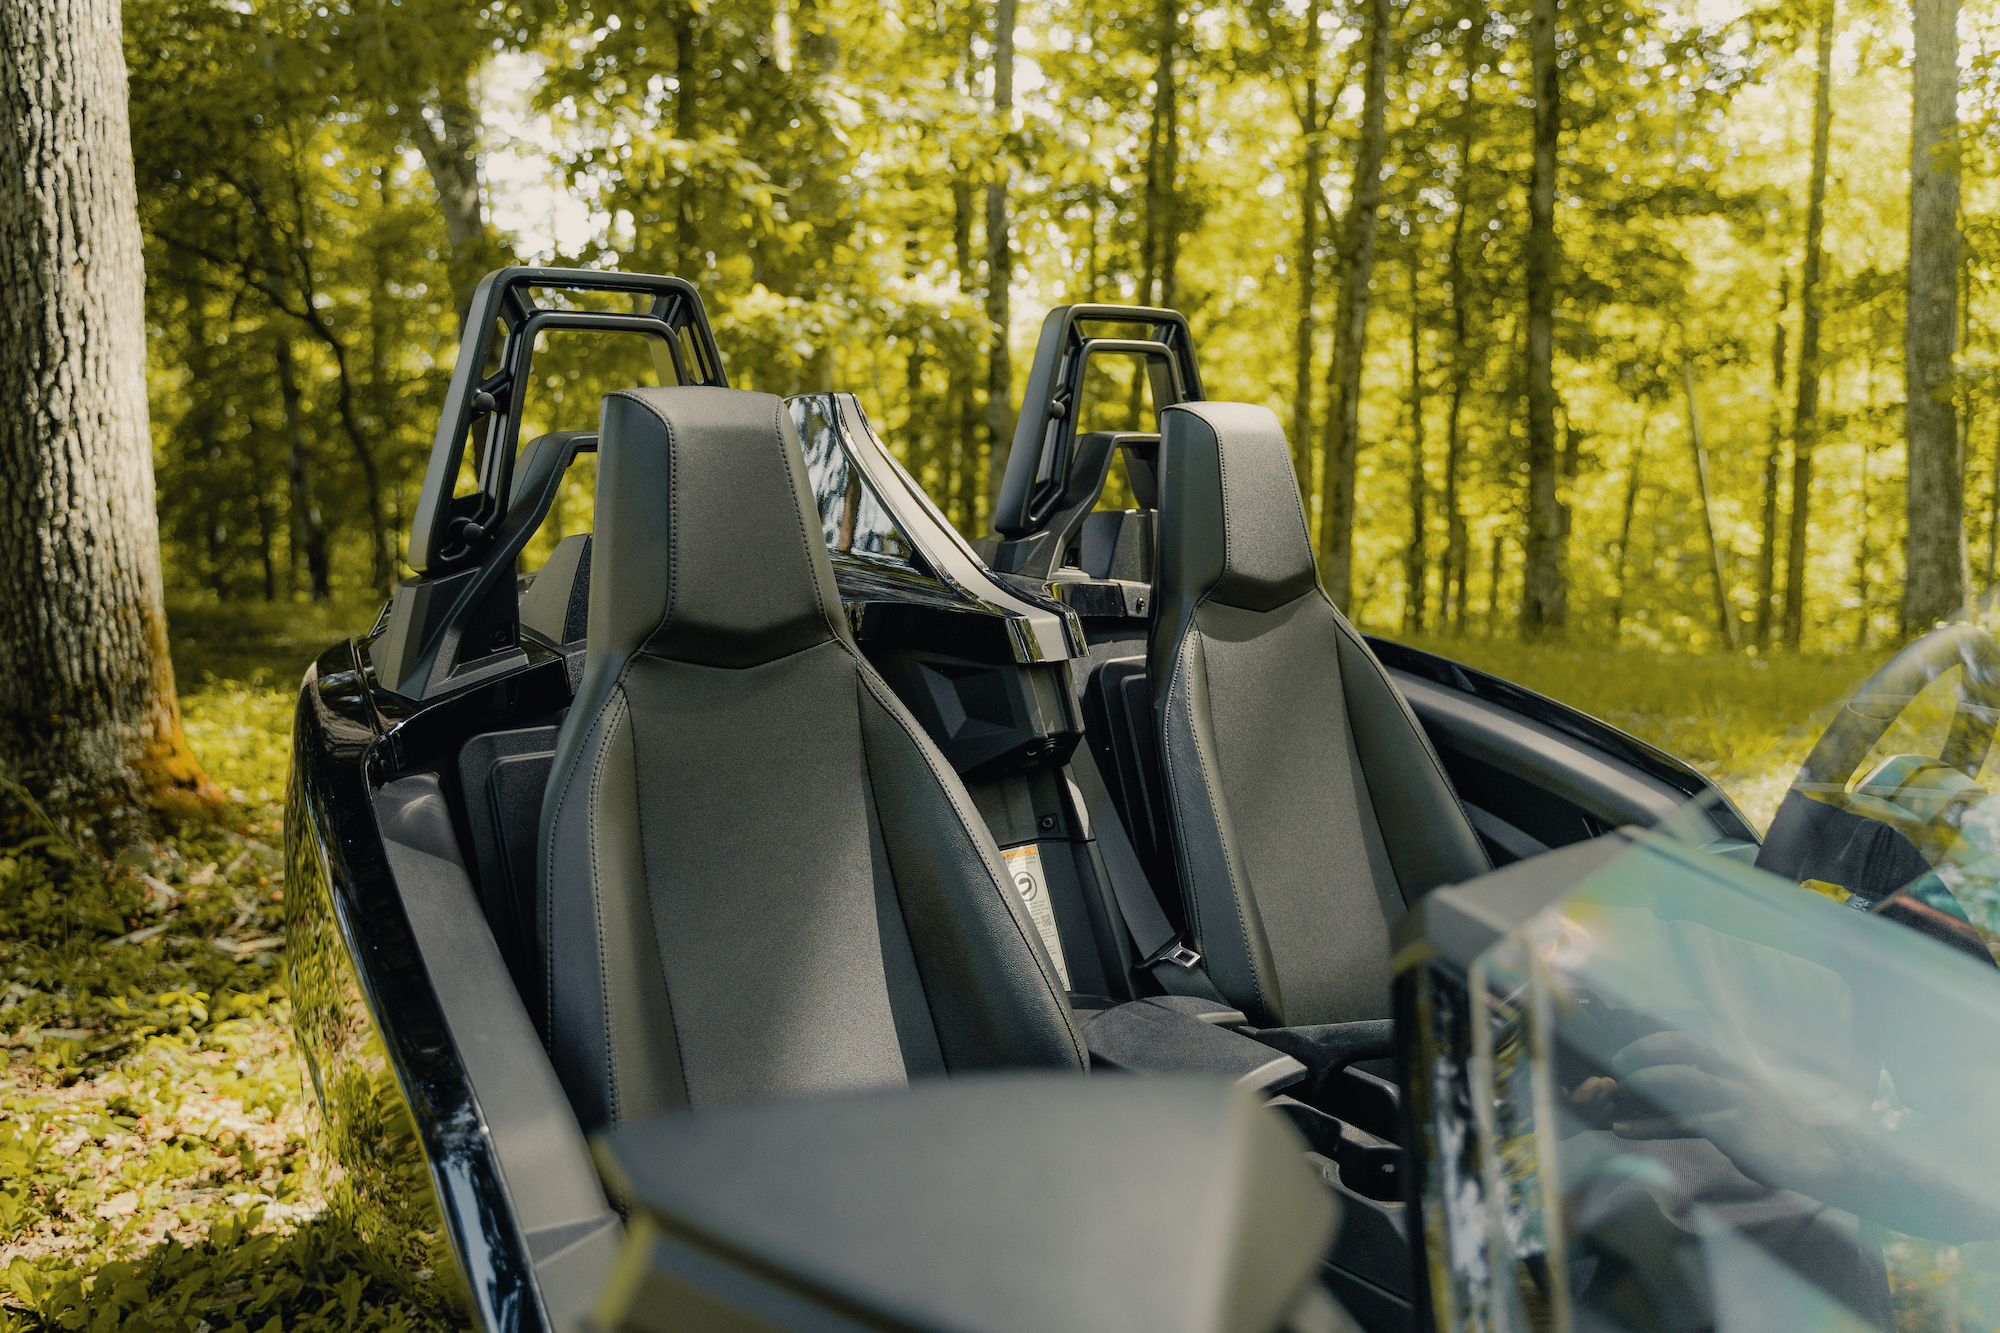 Seats in the Polaris Slingshot - Polaris Slingshots are available as rentals at the Mountain Mile Mall at Mountain Mile Adventures in Pigeon Forge, Tennessee